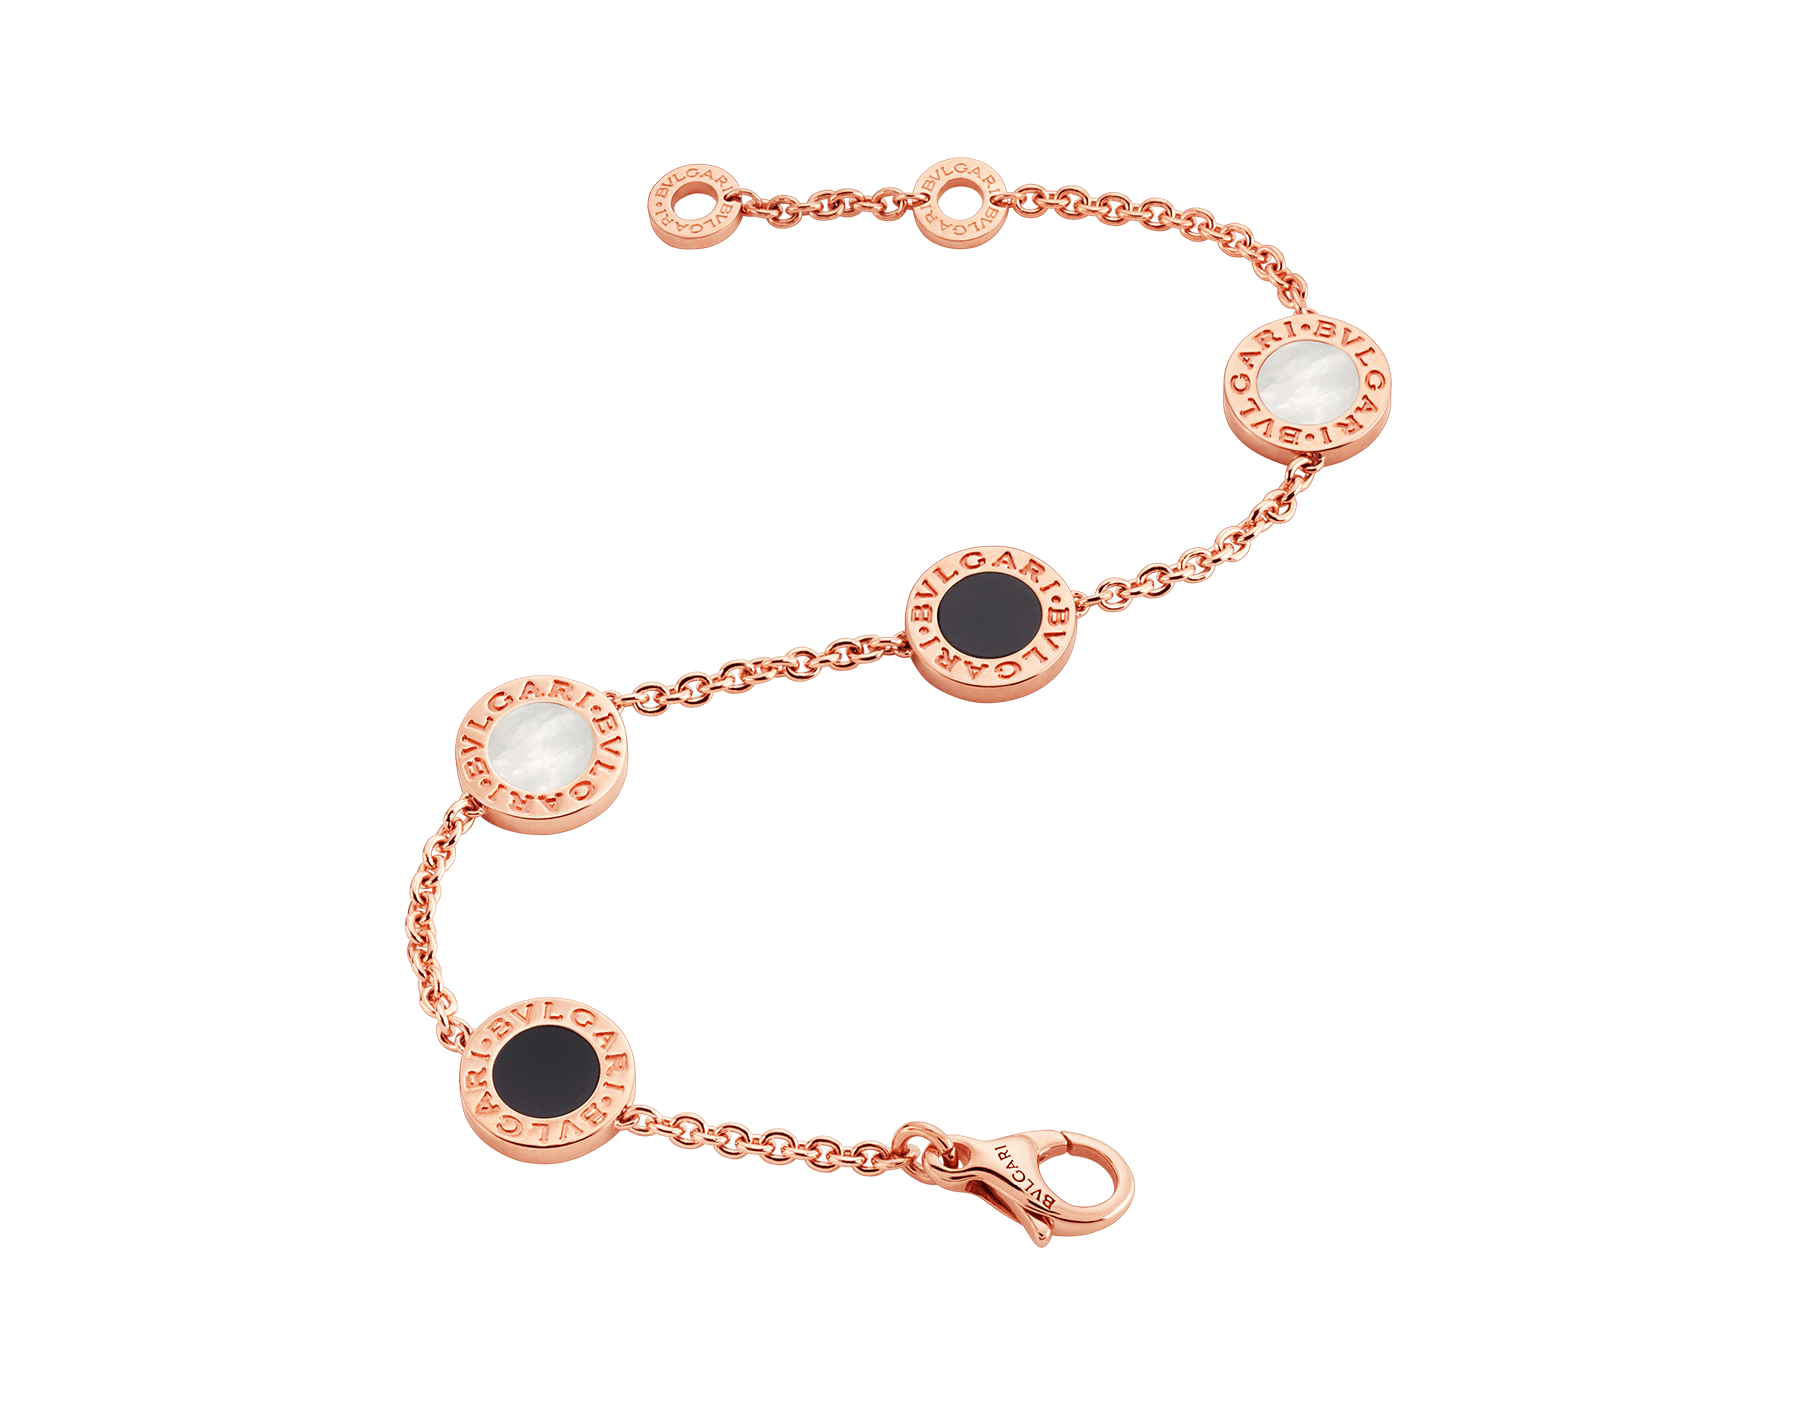 BVLGARI BVLGARI bracelet in 18 kt rose gold set with mother-of-pearl and onyx elements BR857243 image 2